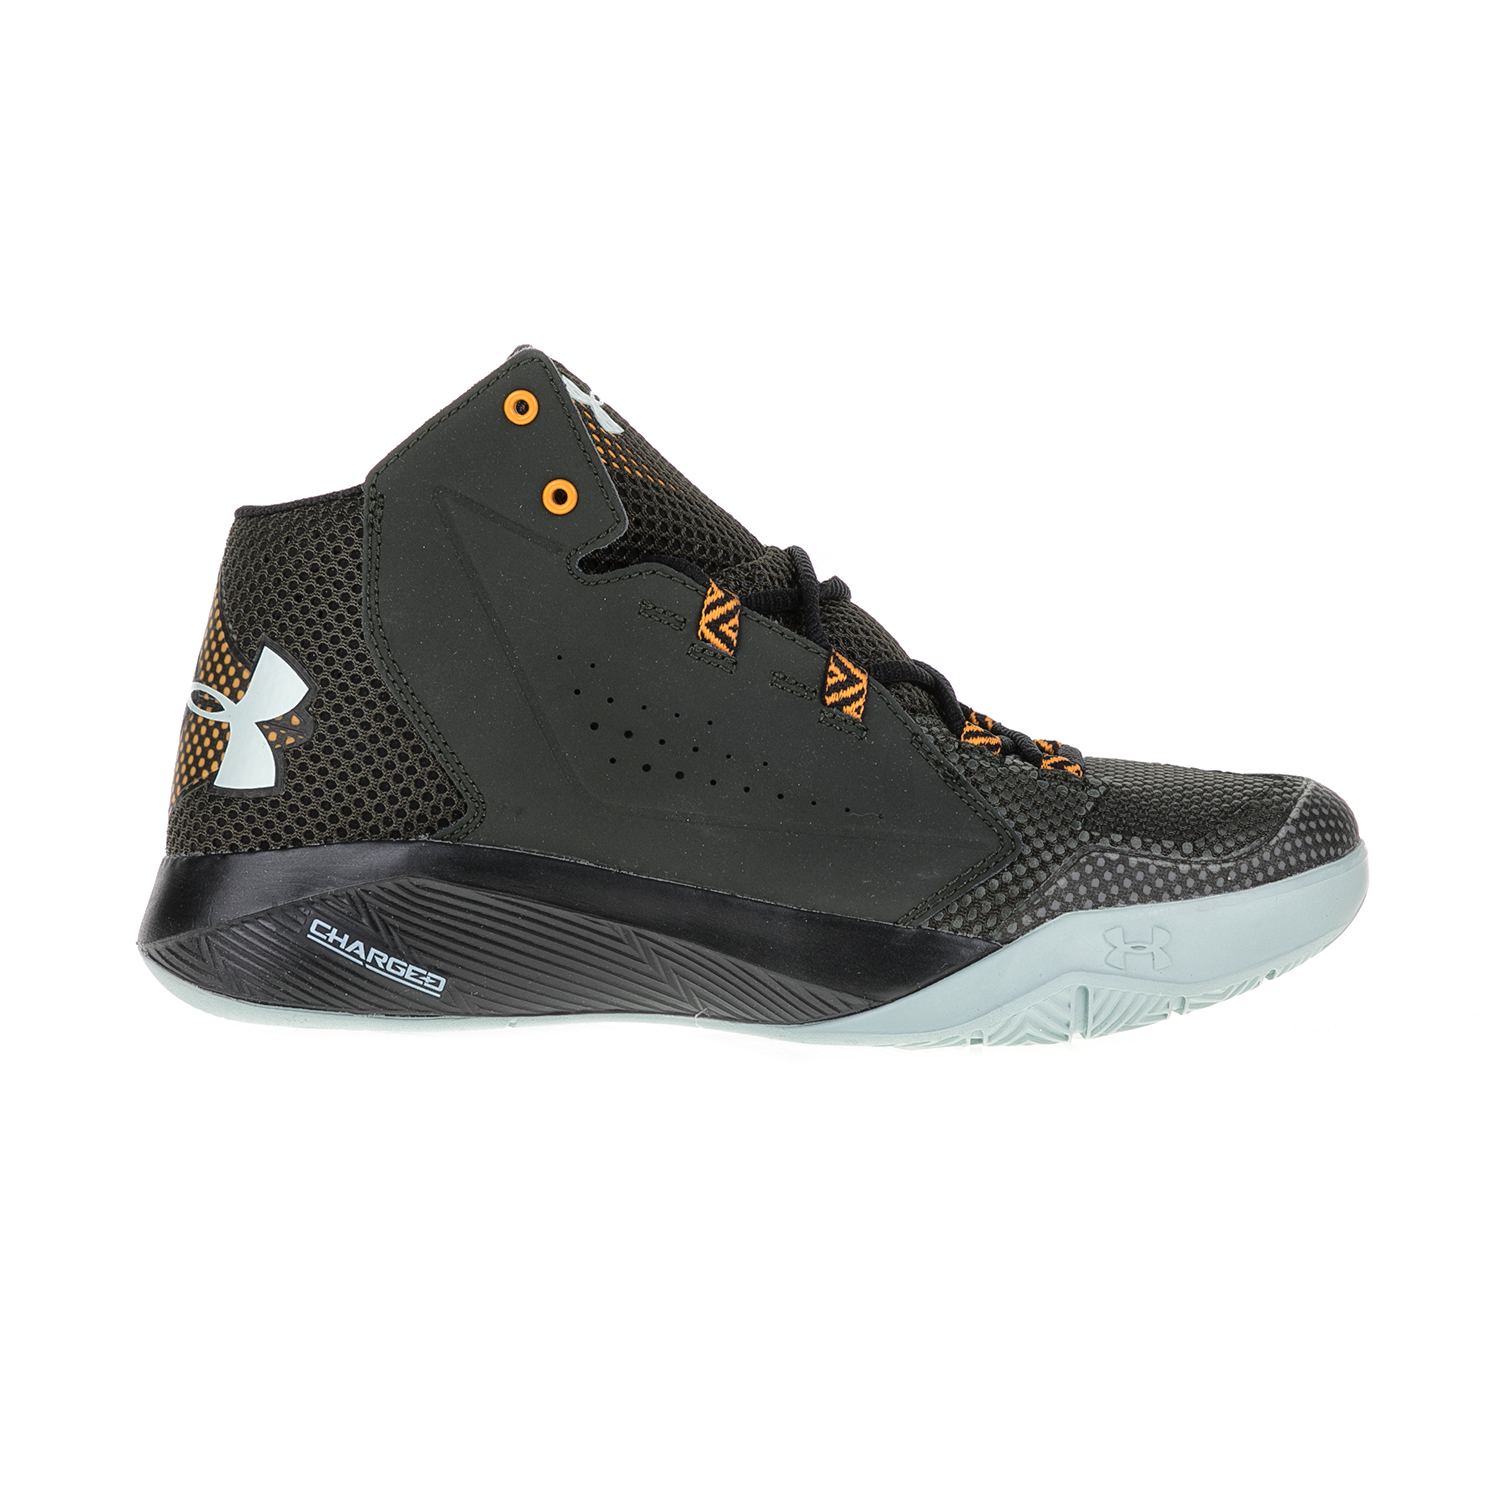 UNDER ARMOUR – Ανδρικά παπούτσια μπάσκετ UNDER ARMOUR Torch Fade καφέ-μαύρα